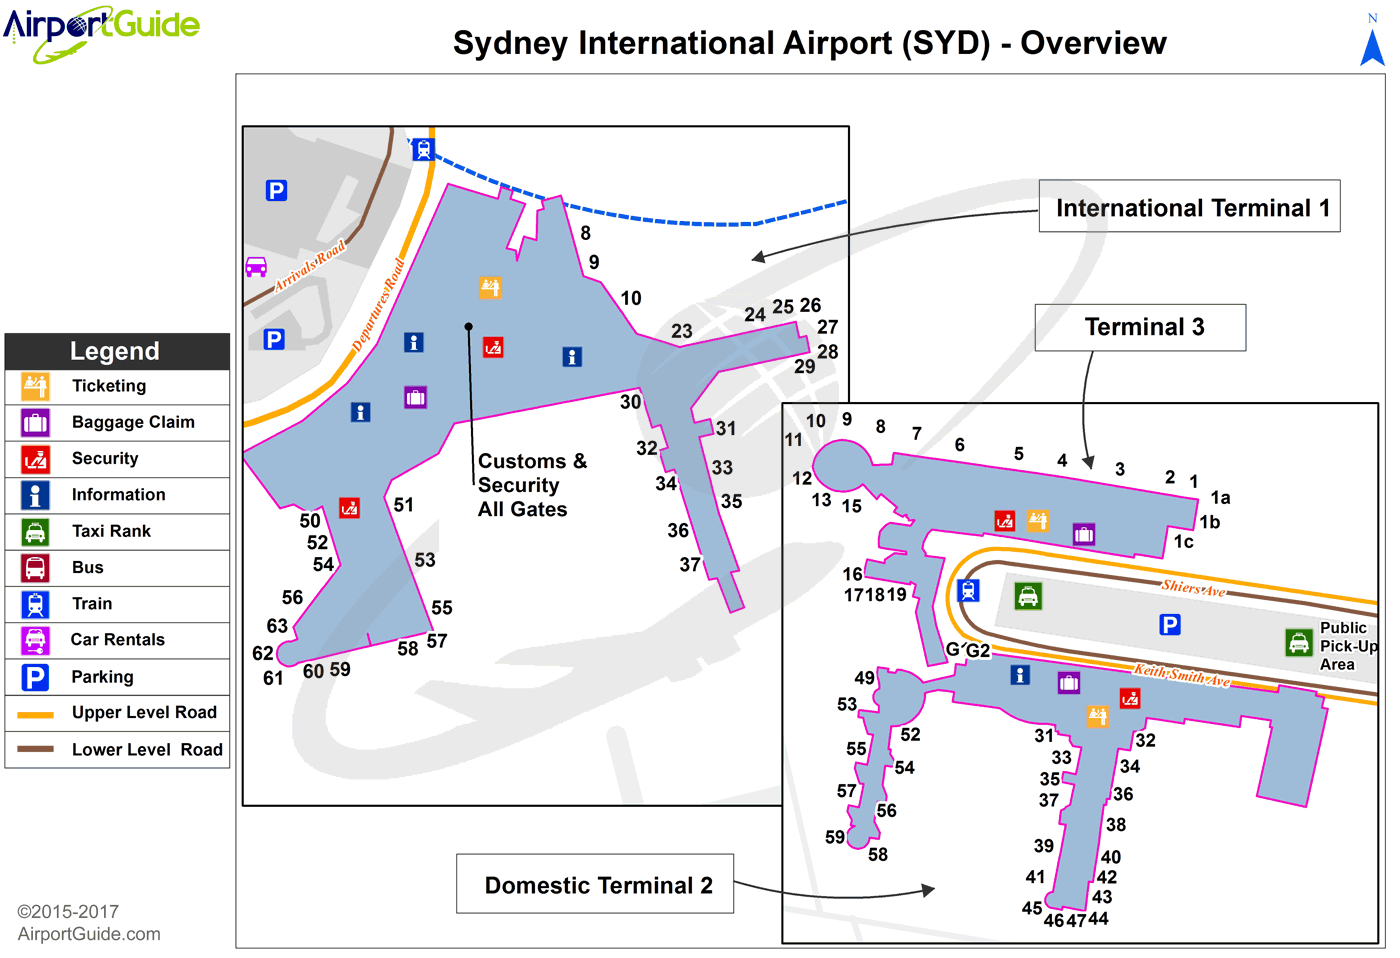 09050dde0cf798ccc01fba530de15869 - How To Get From International To Domestic Terminal Sydney